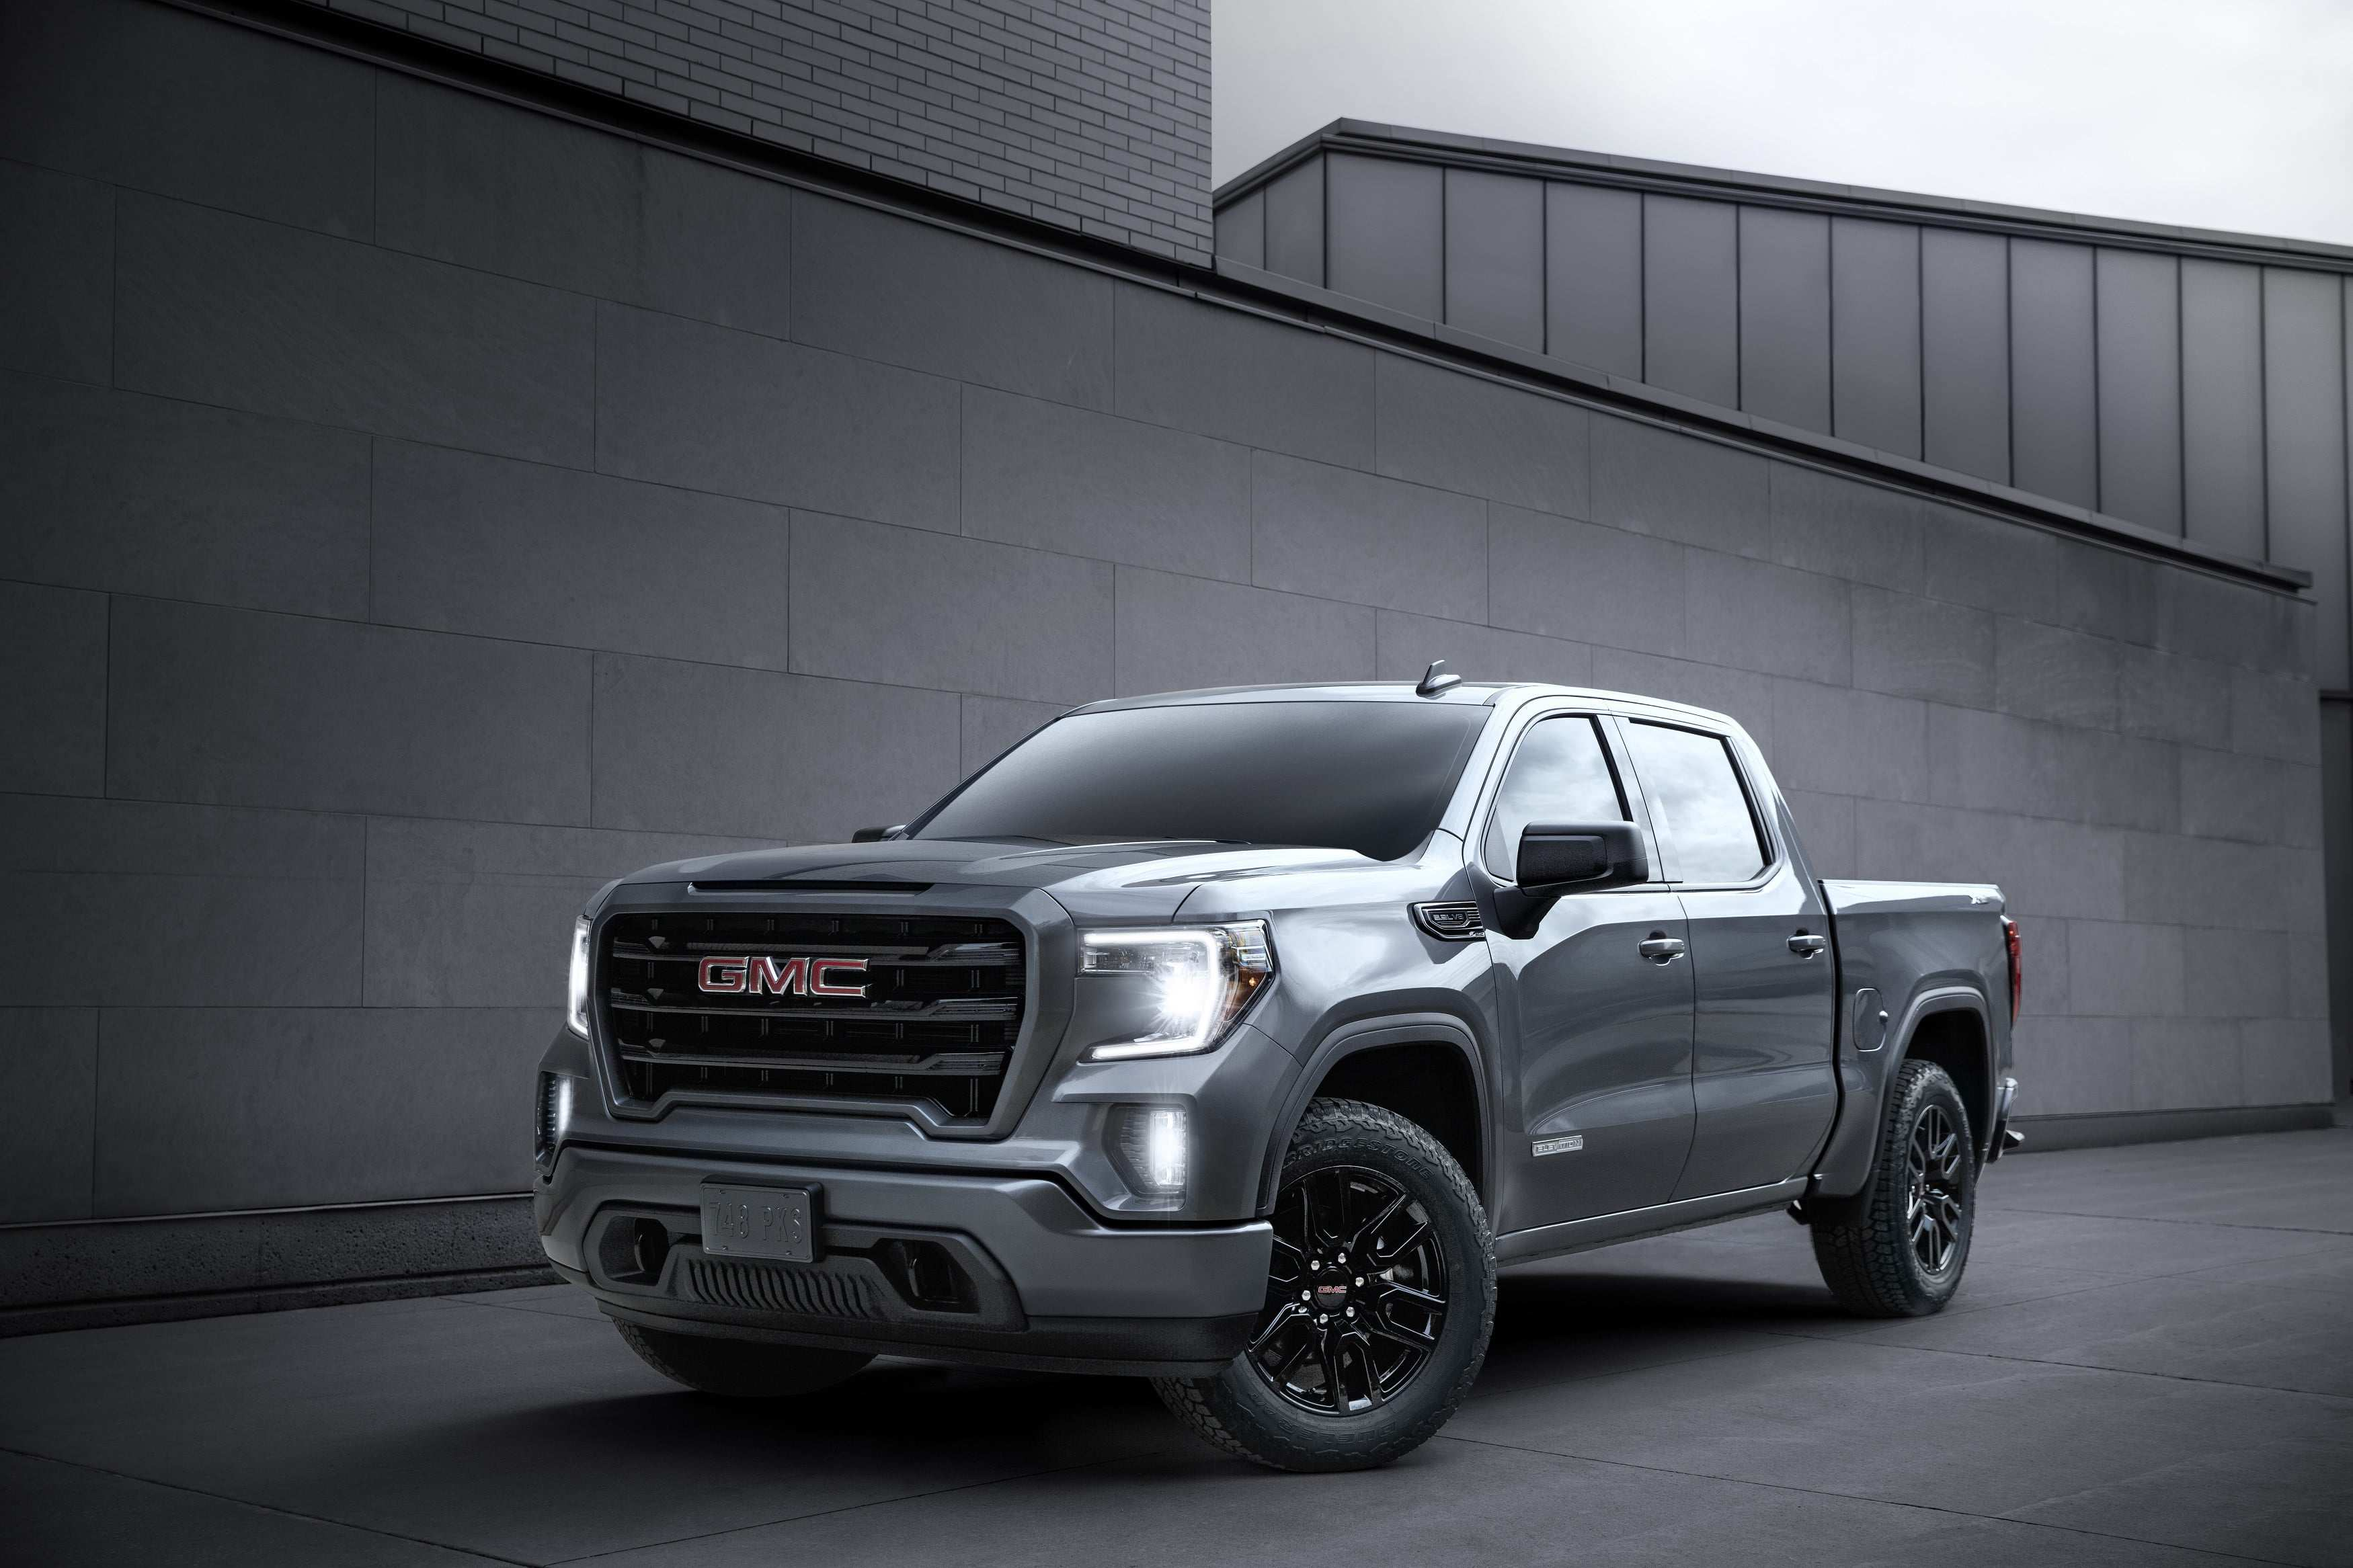 21 The Best GMC Elevation 2020 Picture